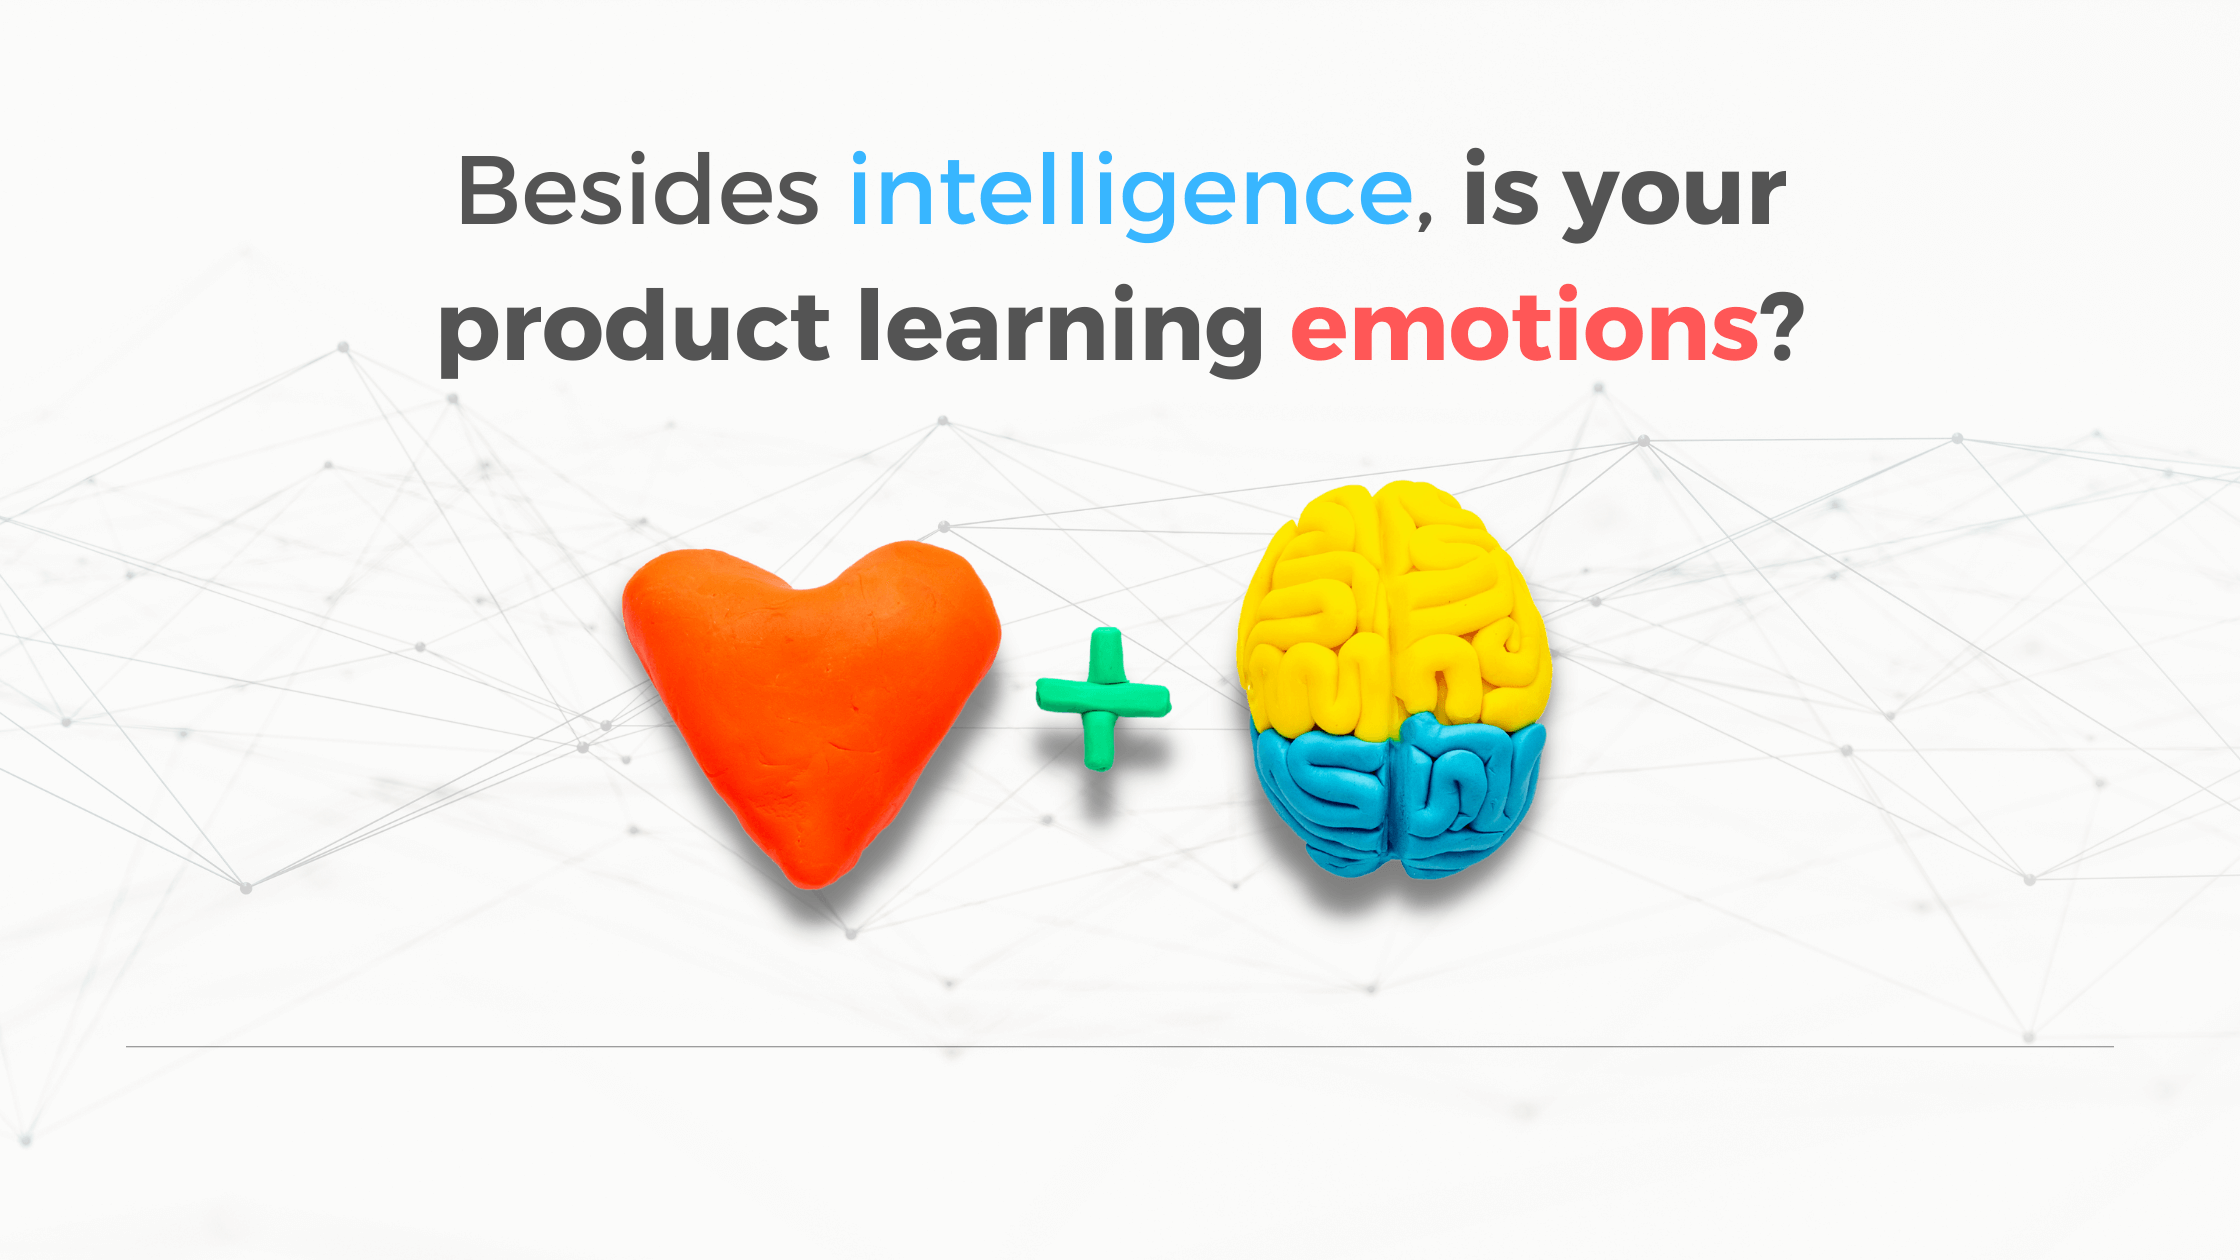 Is your product learning emotional intelligence